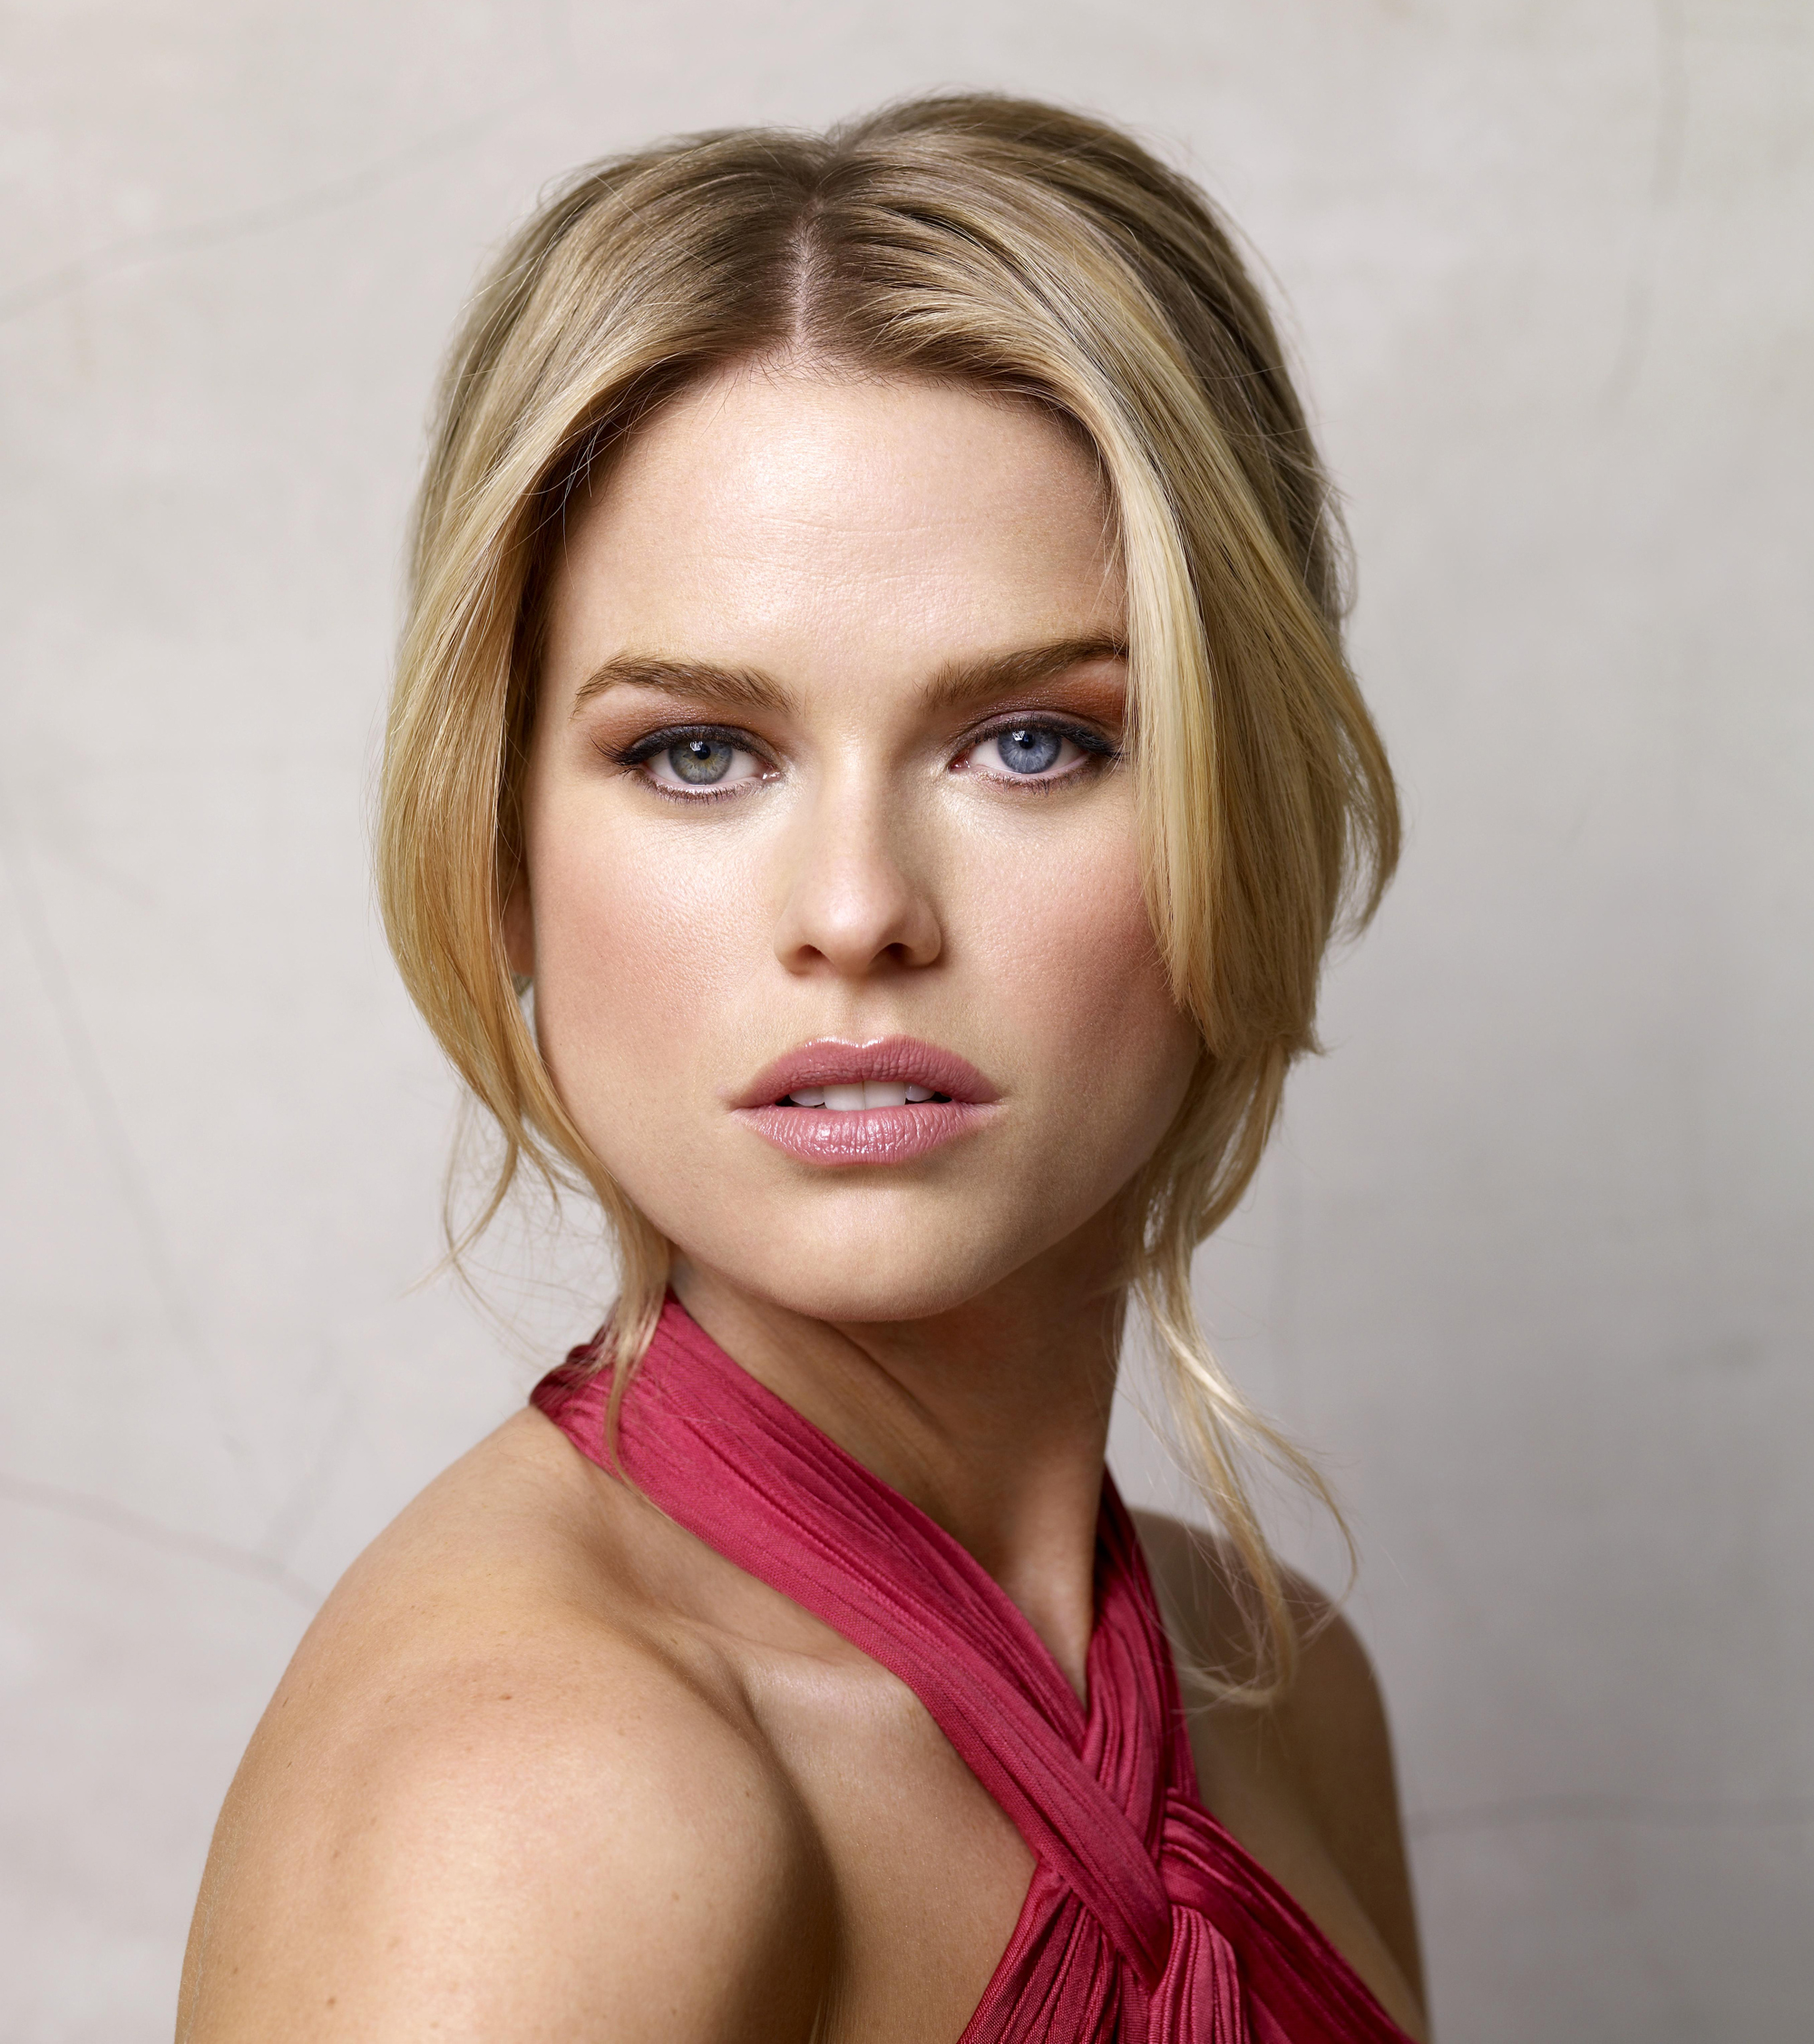 alice-eve-image1